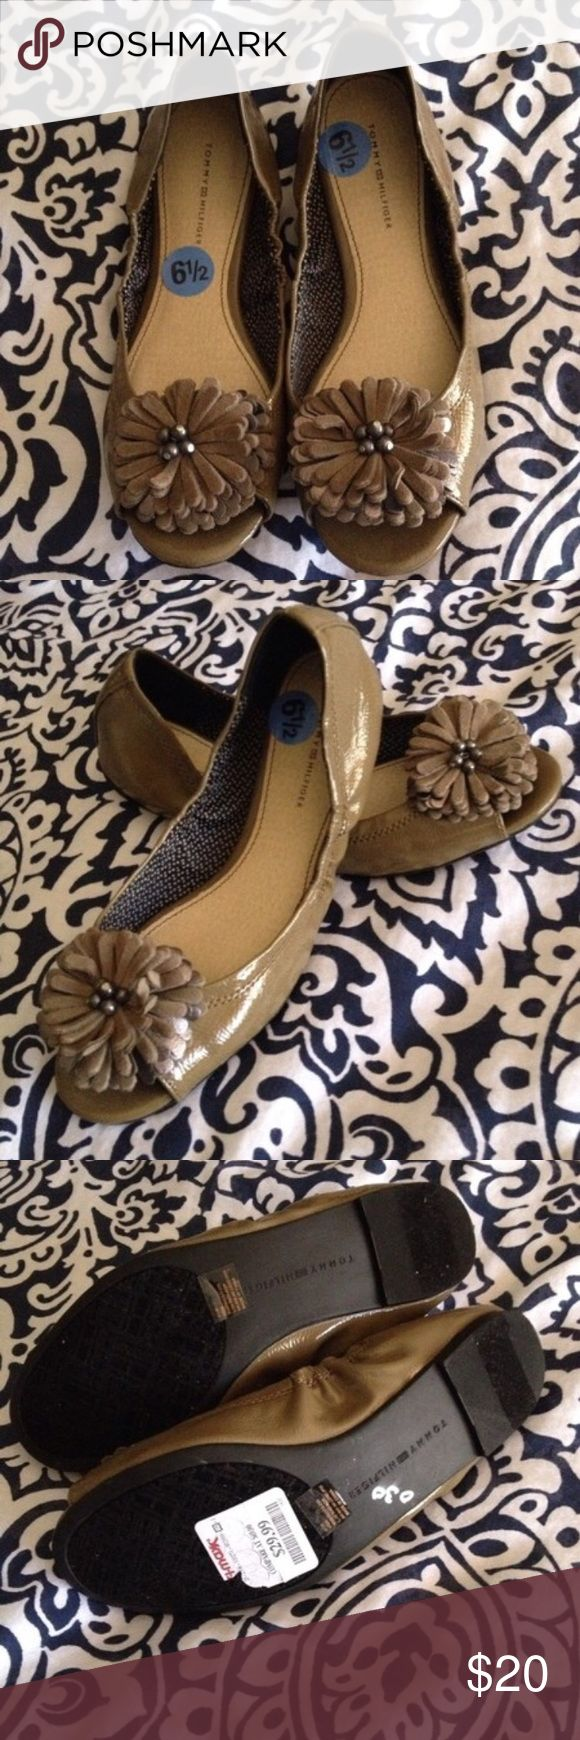 Tommy Hilfiger Peep Toe Flats New Peep Toe Flats Size 6.5 Tommy Hilfiger Shoes Flats & Loafers